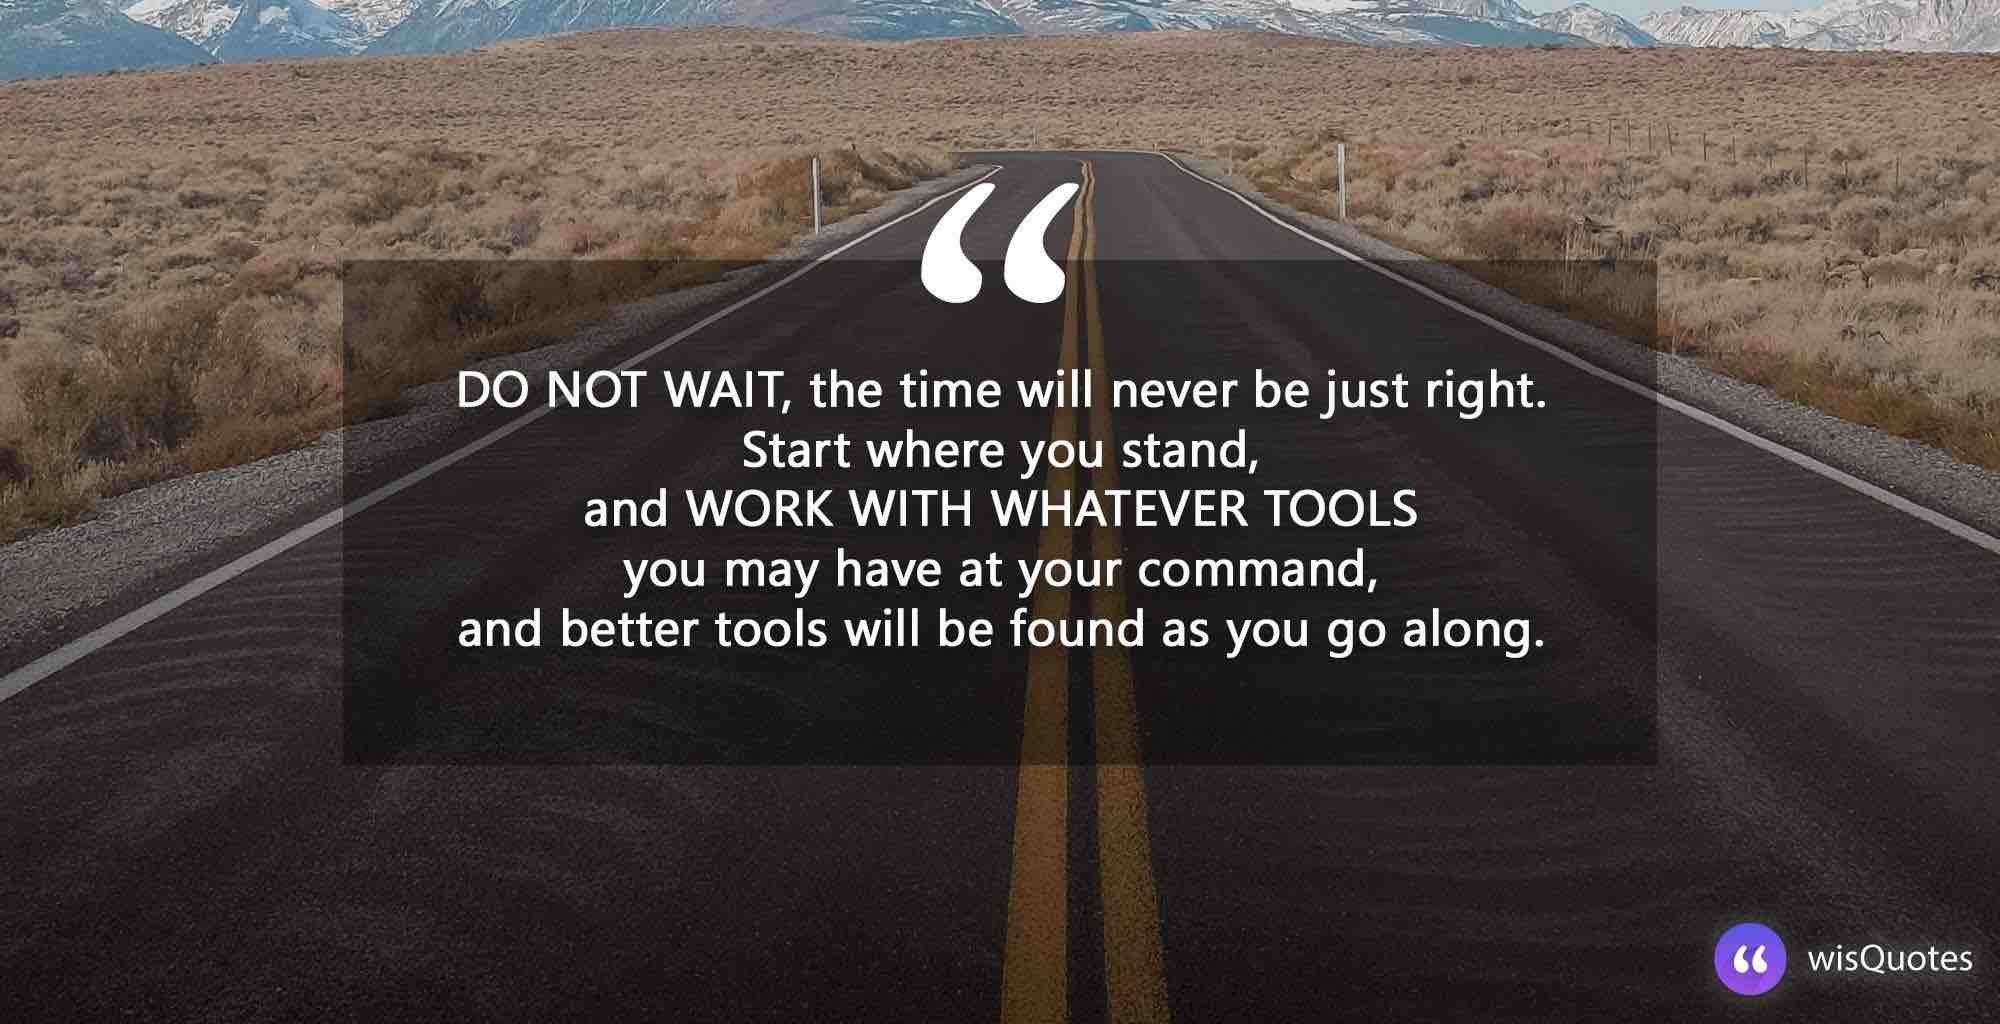 Do not wait, the time will never be just right. Start where you stand, and work with whatever tools you may have at your command, and better tools will be found as you go along.